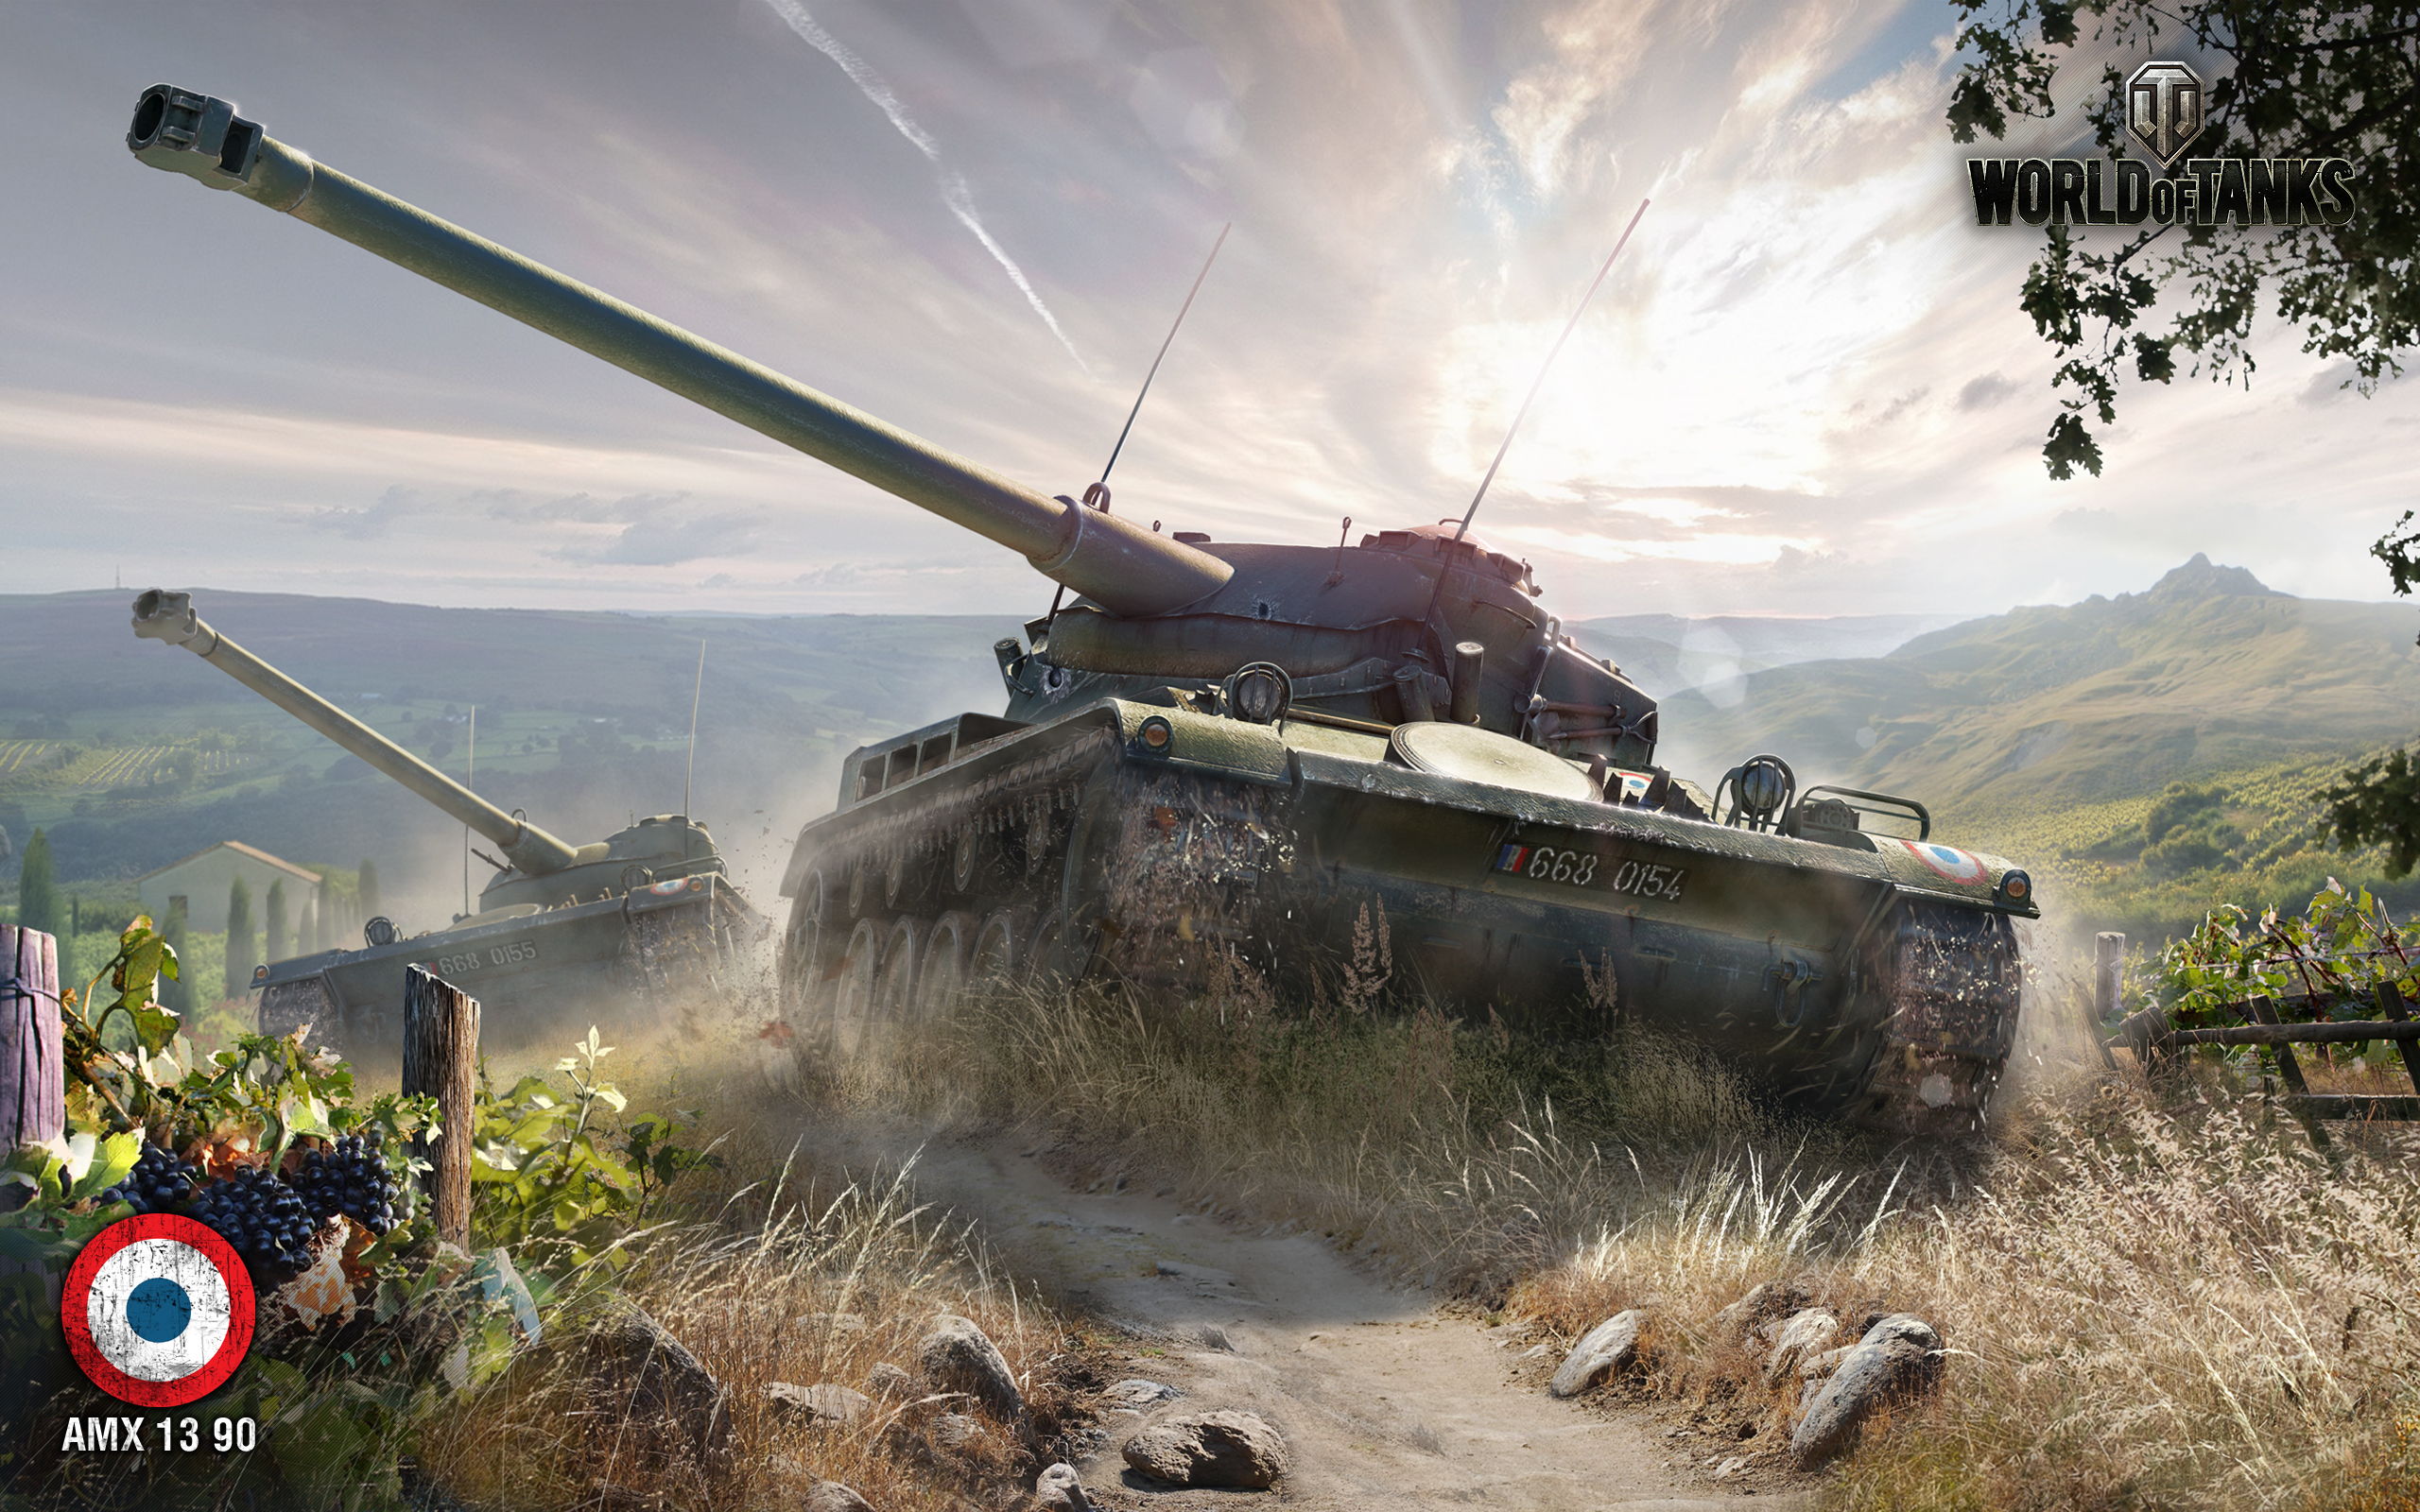 AMX 13 90 World of Tanks 2023.22 Kb